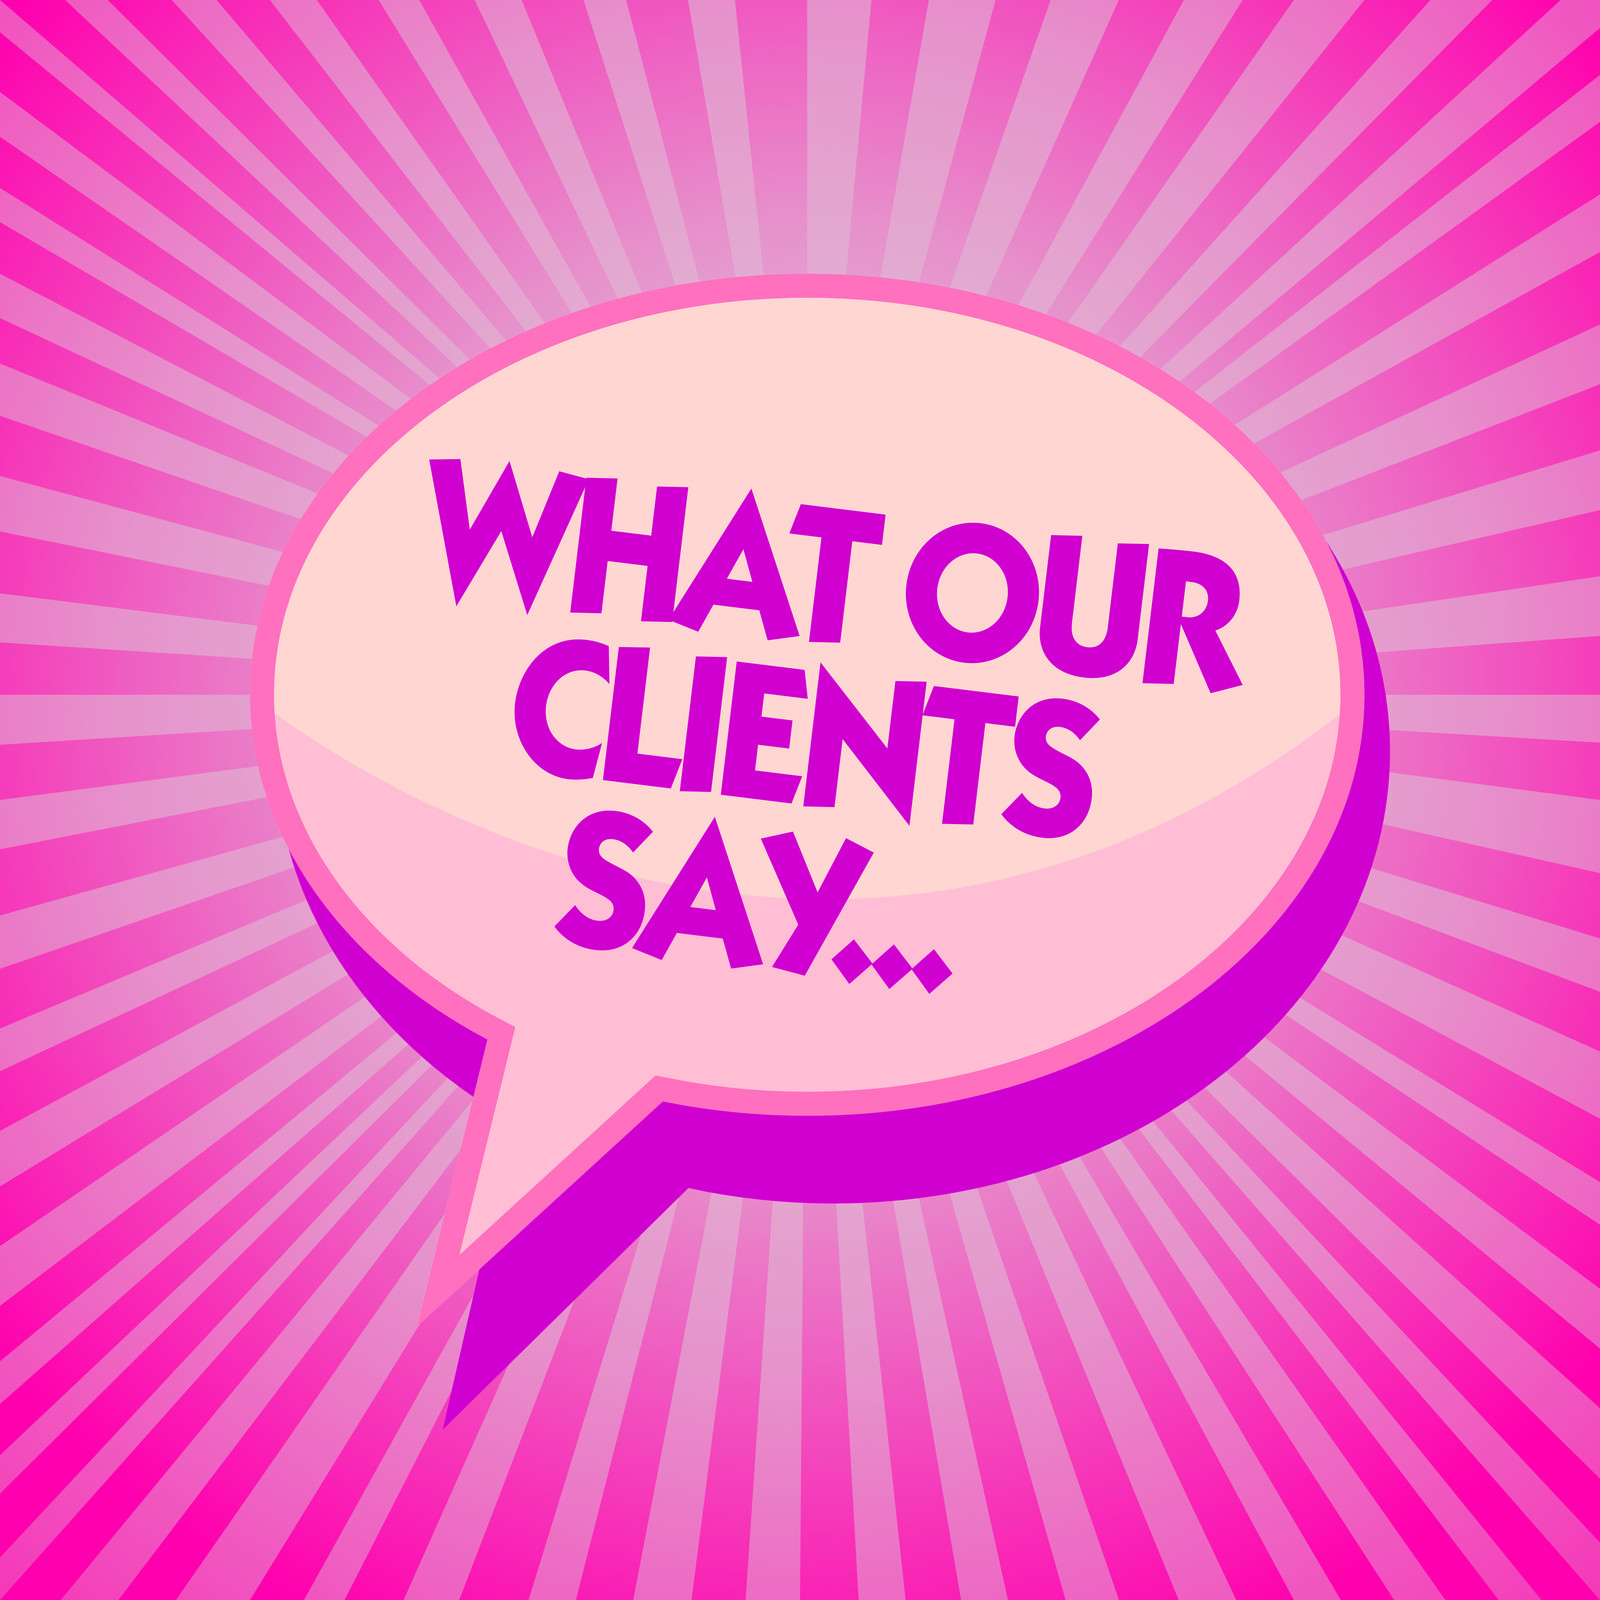 lenore-koppelman-the-cheeky-chipmunk-website-what-our-clients-say-talk-bubble-testimonial-pink.jpg